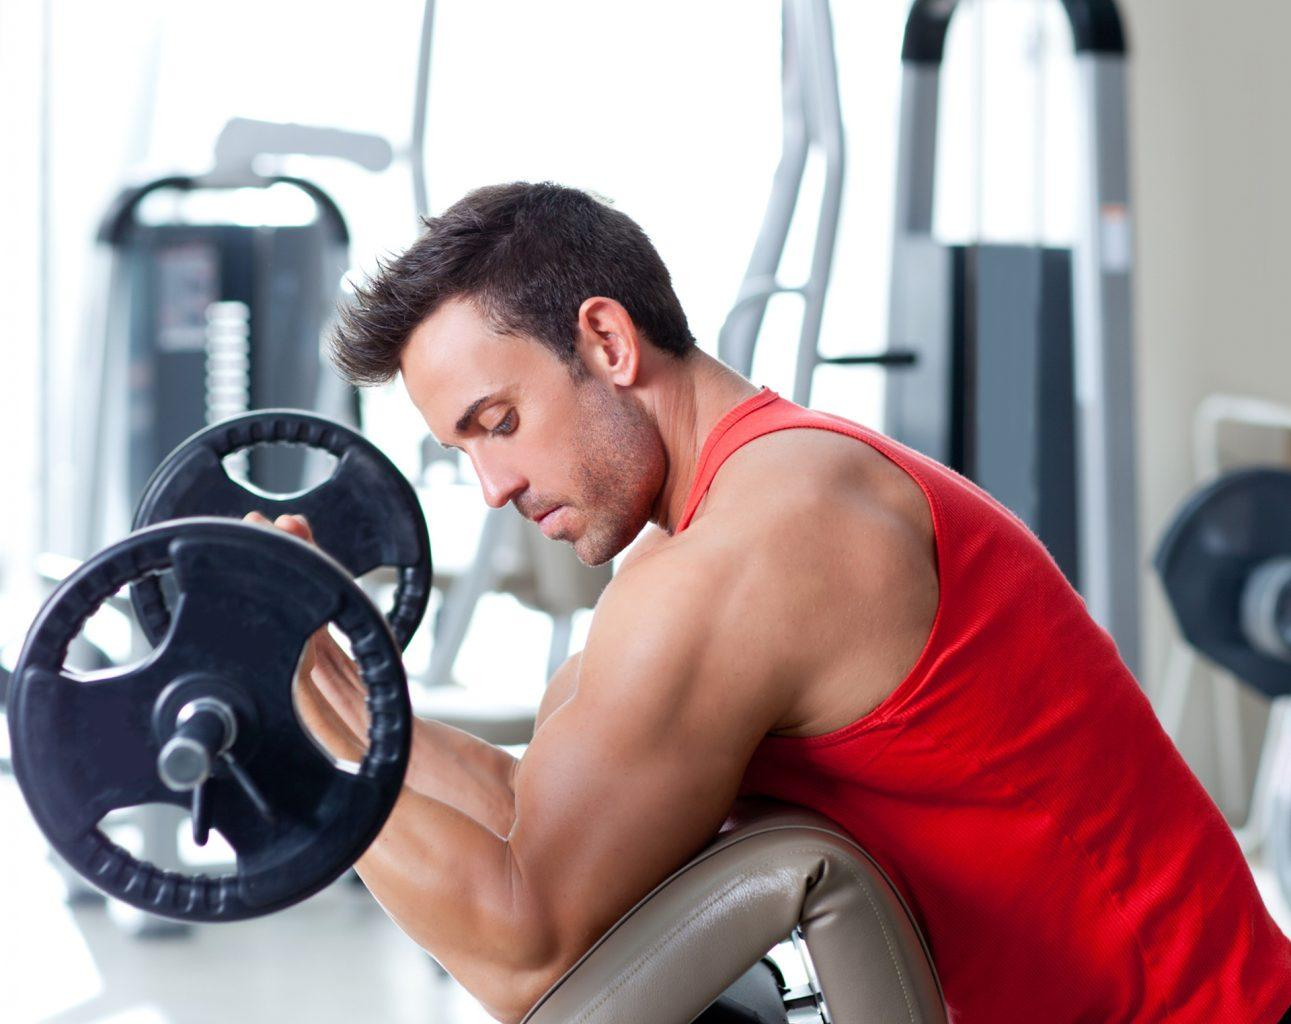 Get Fit: 5 Simple Tips for Men to Build Muscle Strength